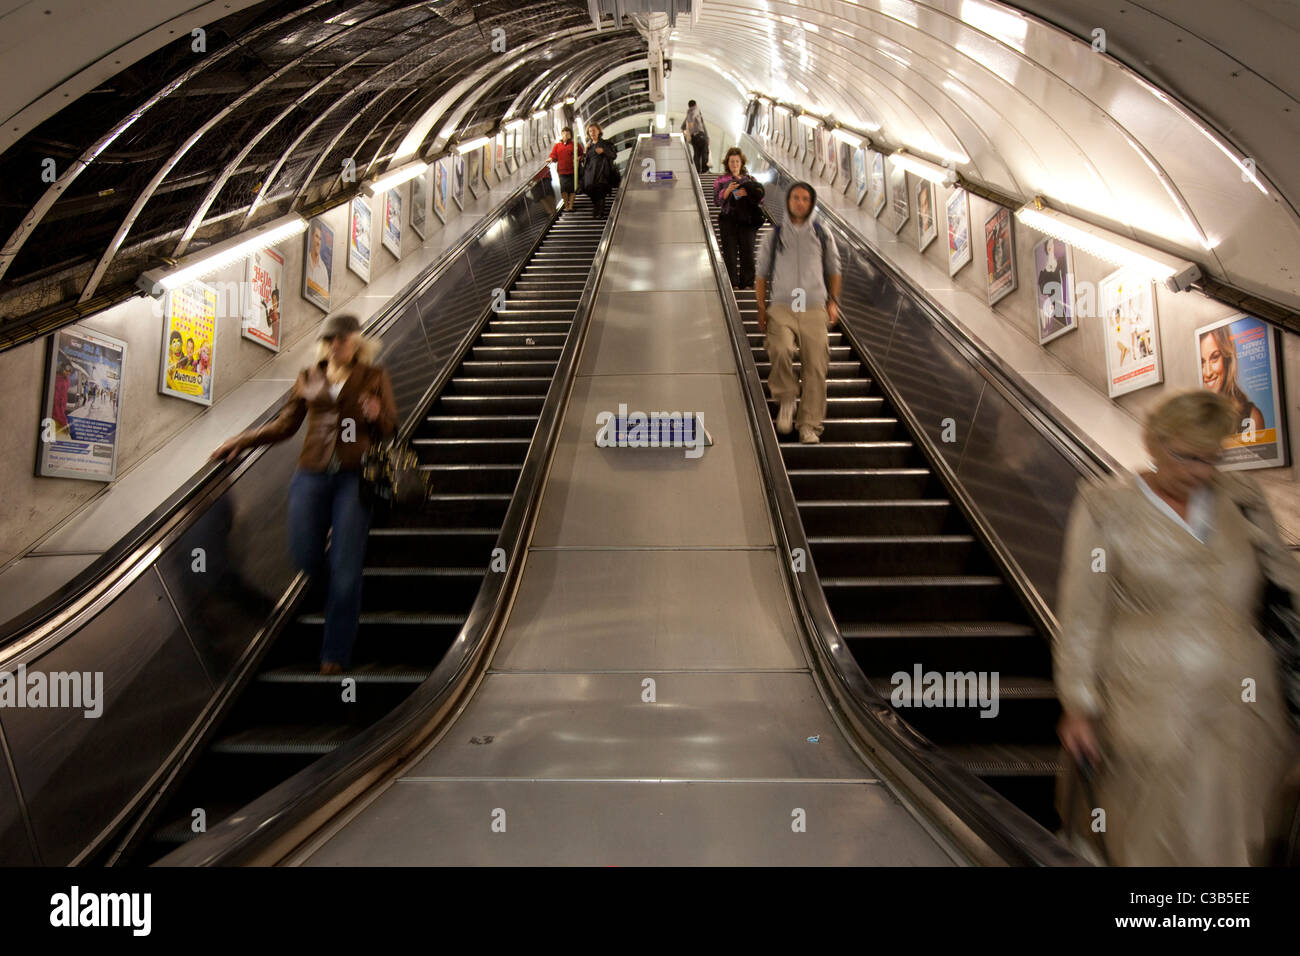 The underground escalator system at Oxford circus station. - Stock Image